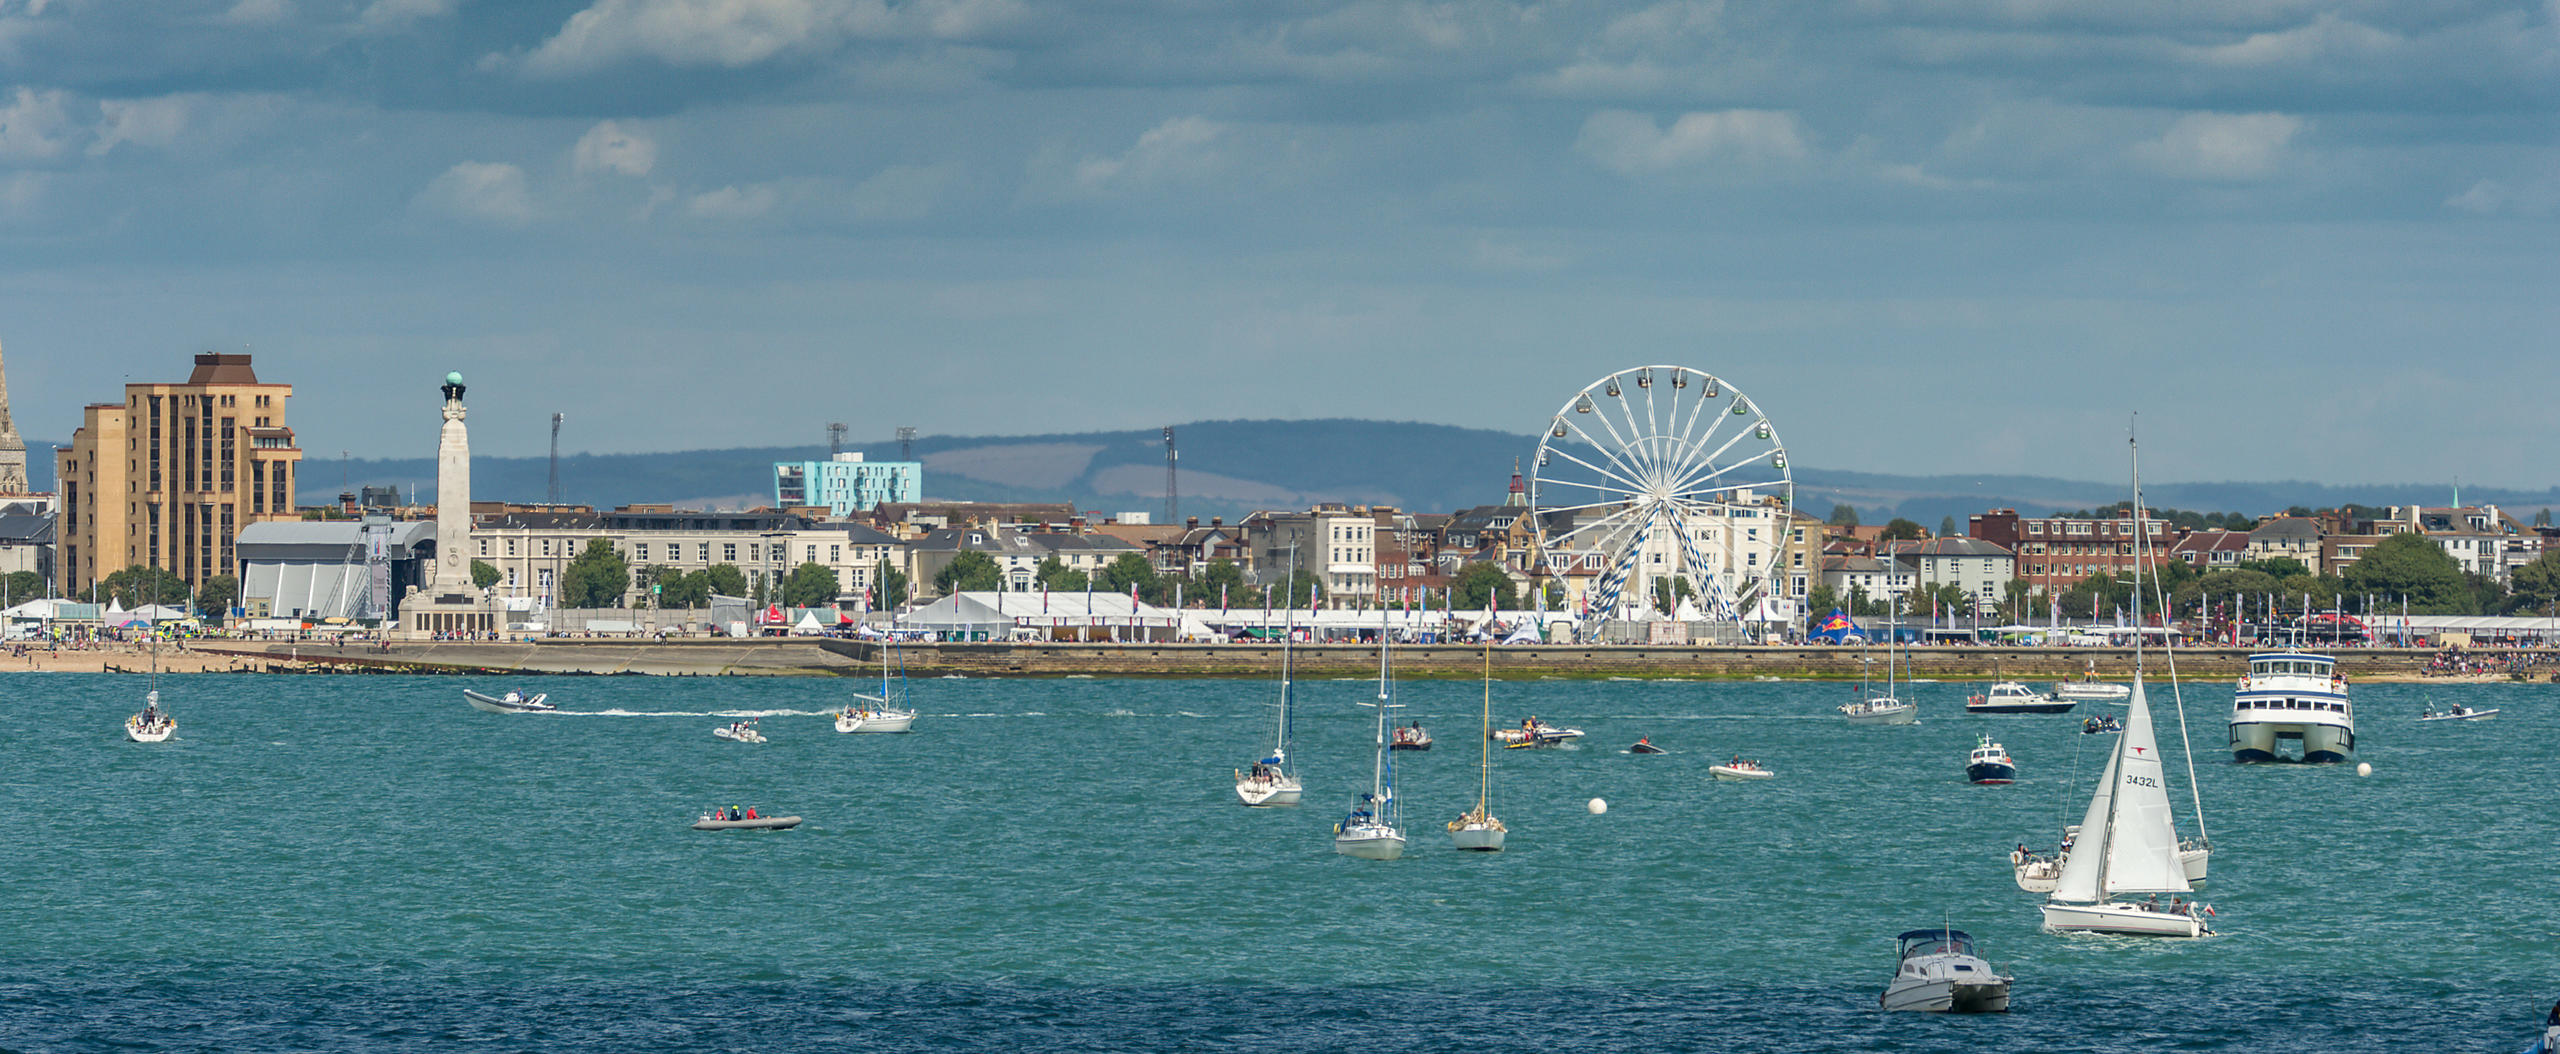 Southsea Seafront During America's Cup Portsmouth 2015